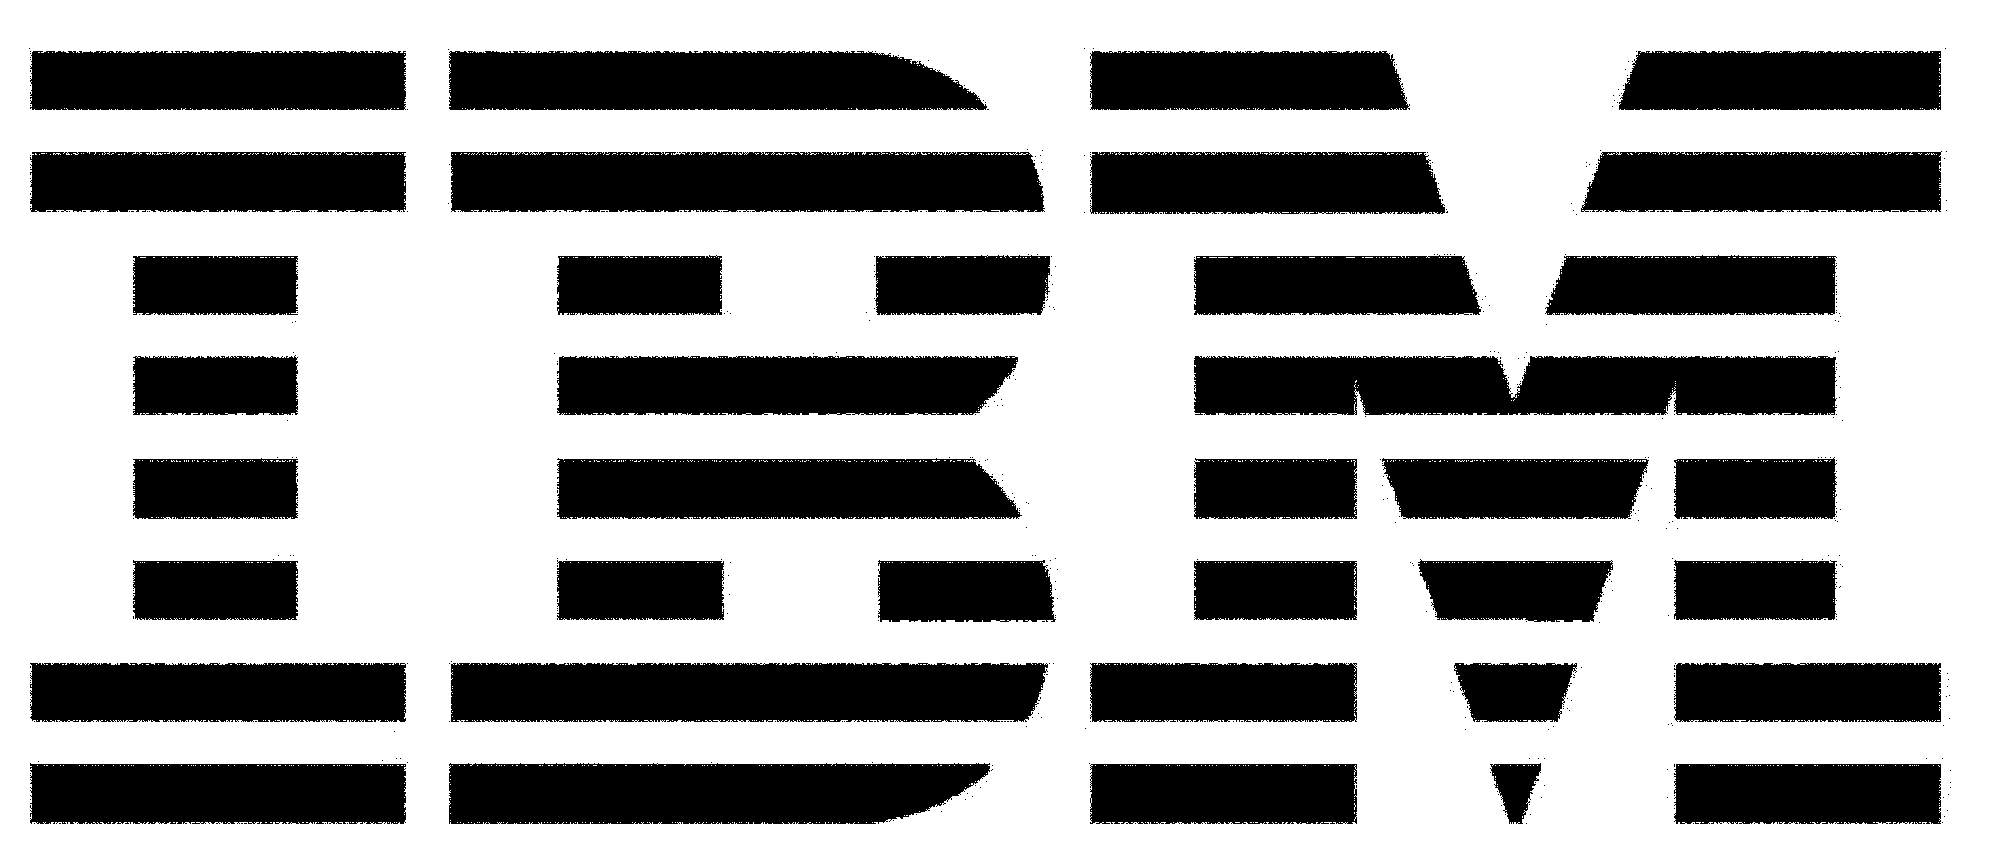 ibm logo  ibm symbol meaning  history and evolution ibm logo png download ibm logo png transparent background